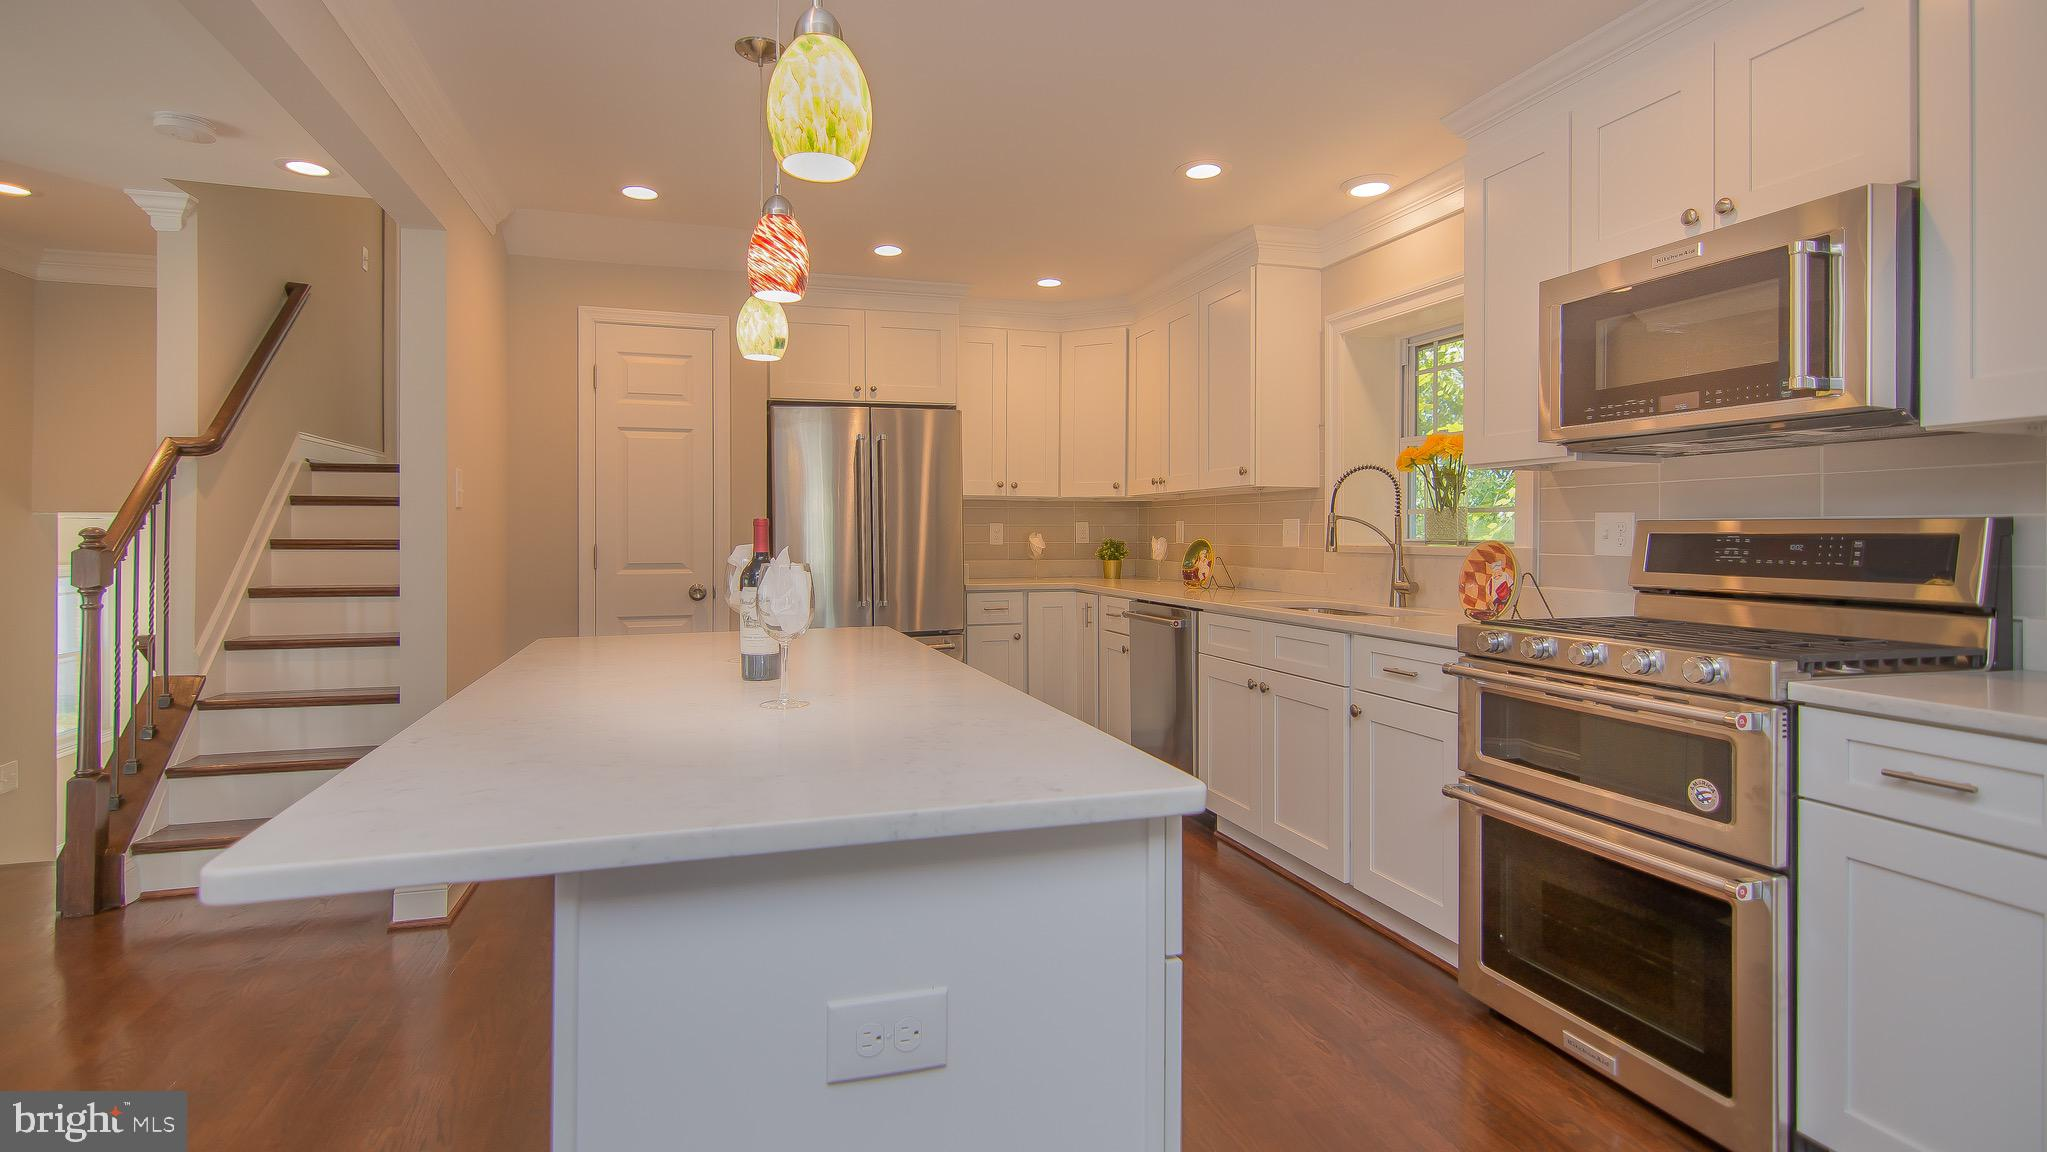 5636 6TH STREET N, ARLINGTON, VA 22205